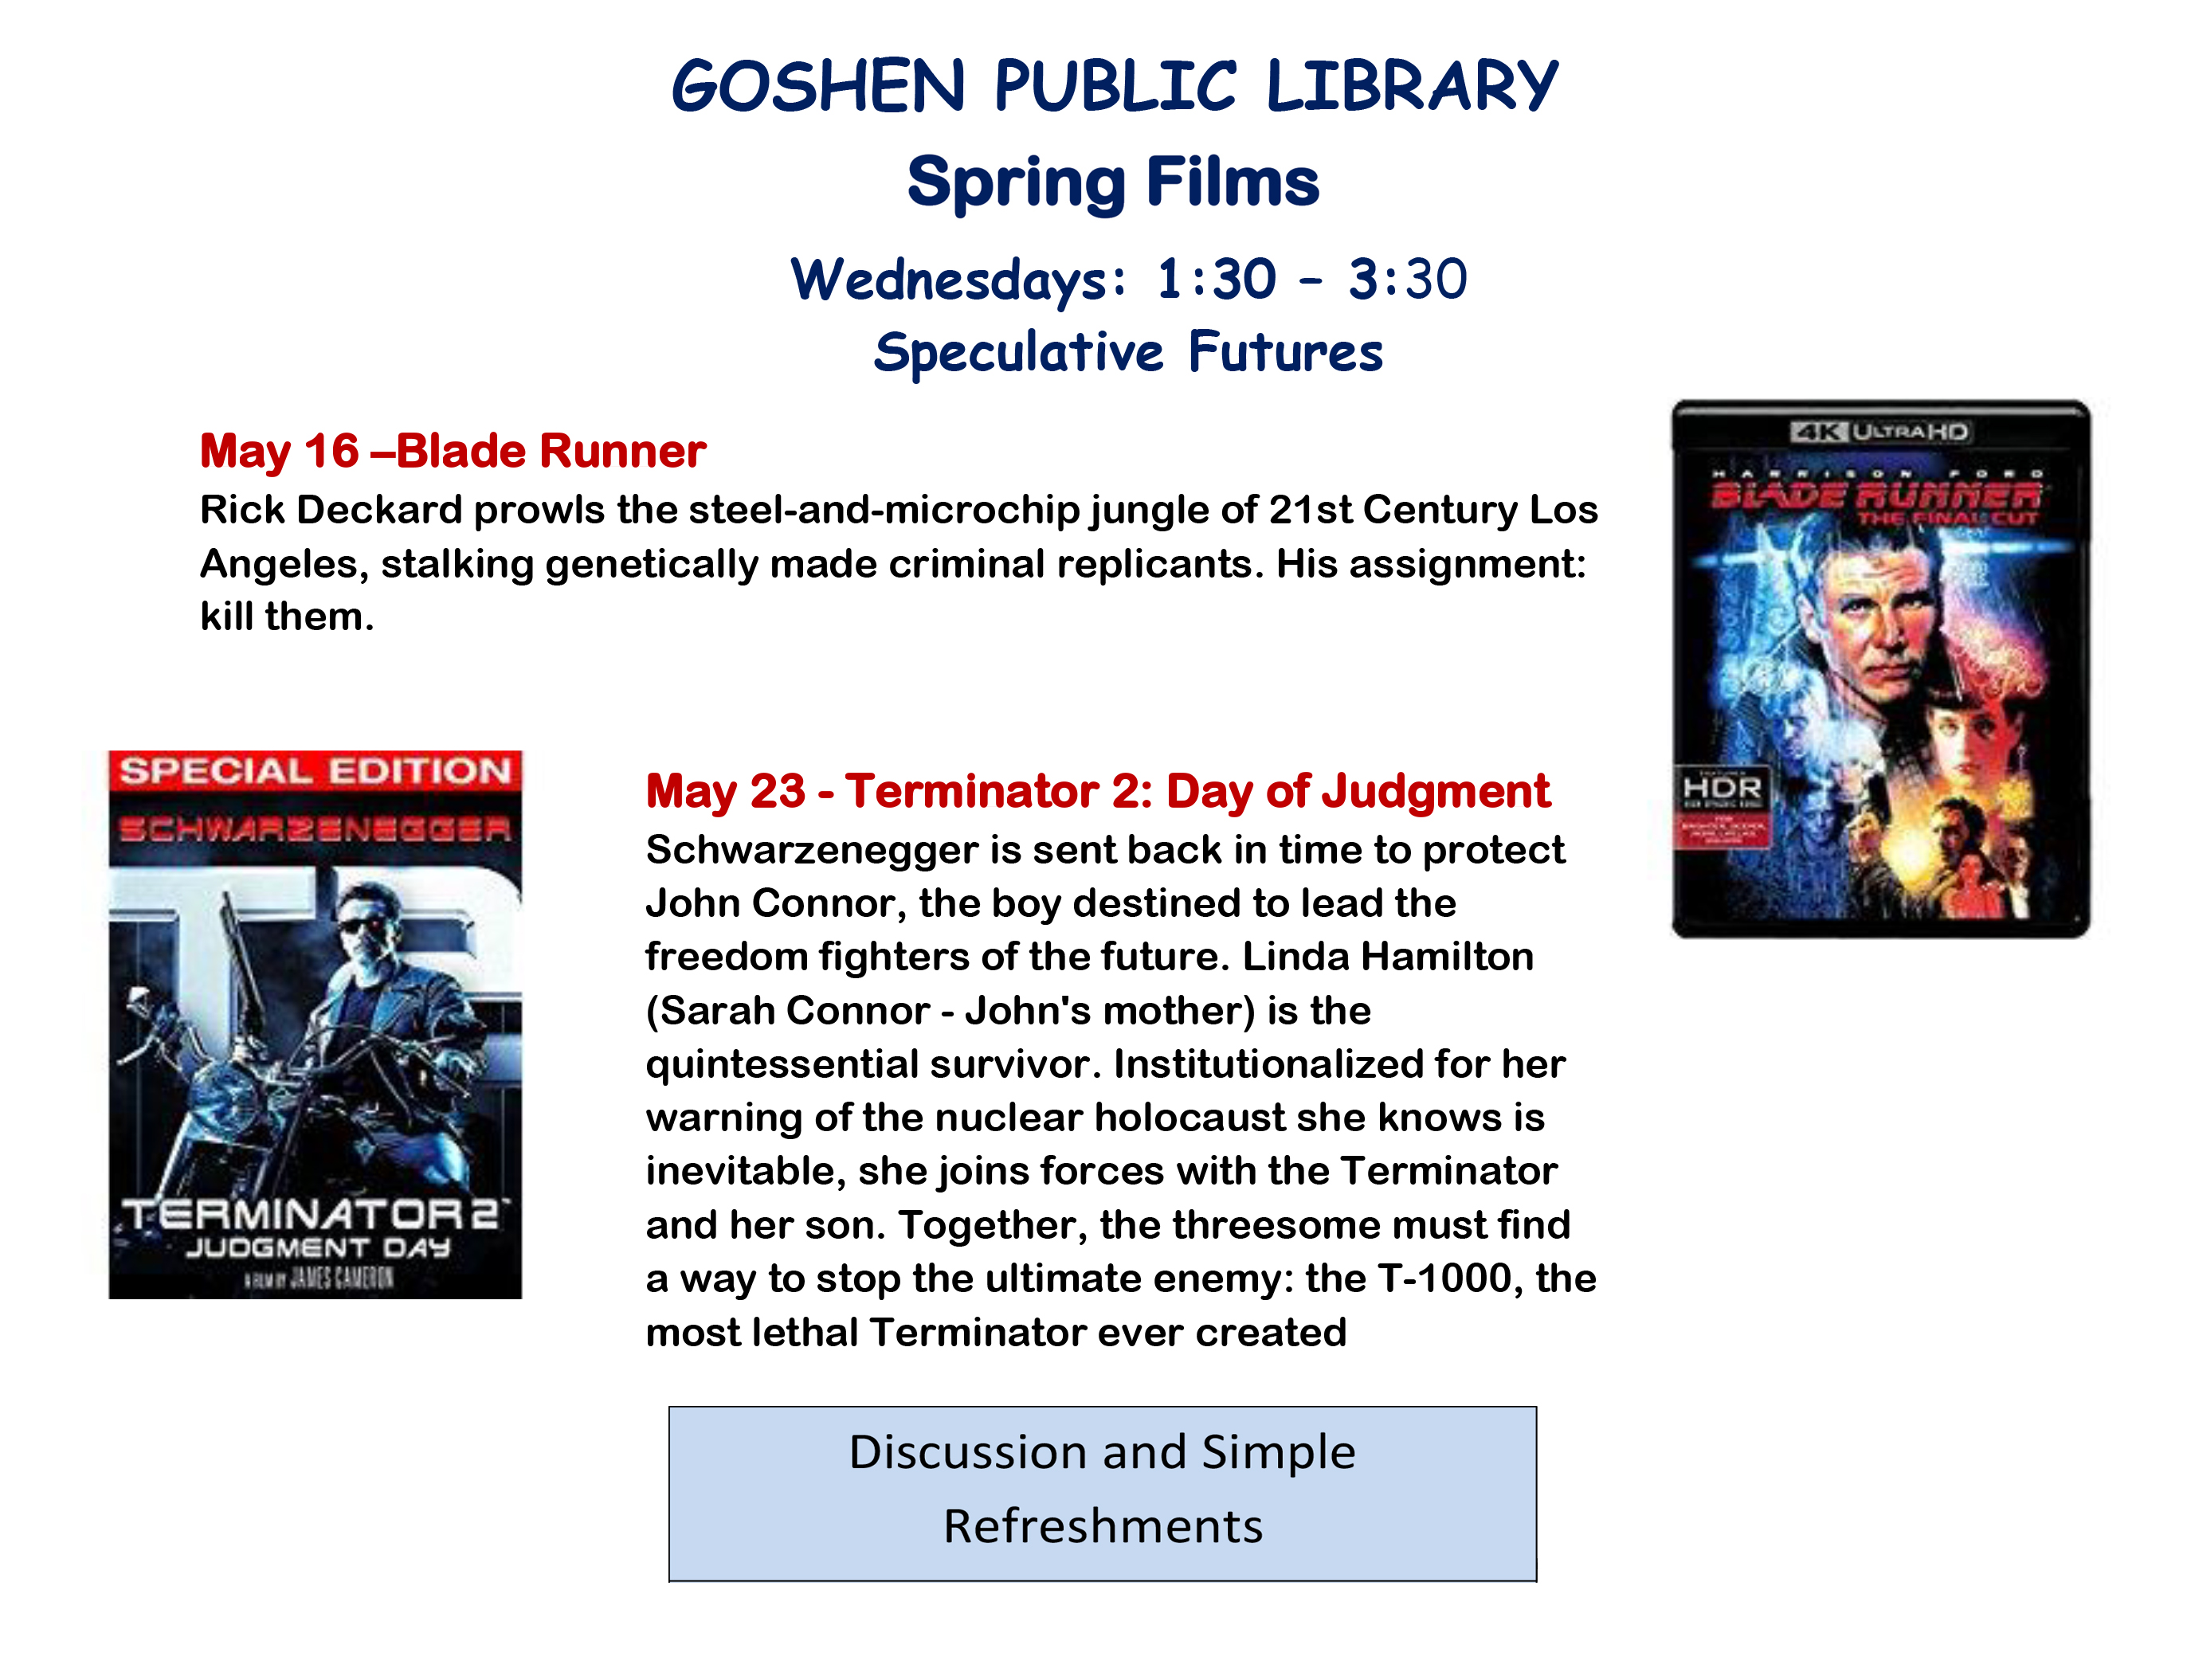 GOSHEN PUBLIC LIBRARY FILM may two, 2018